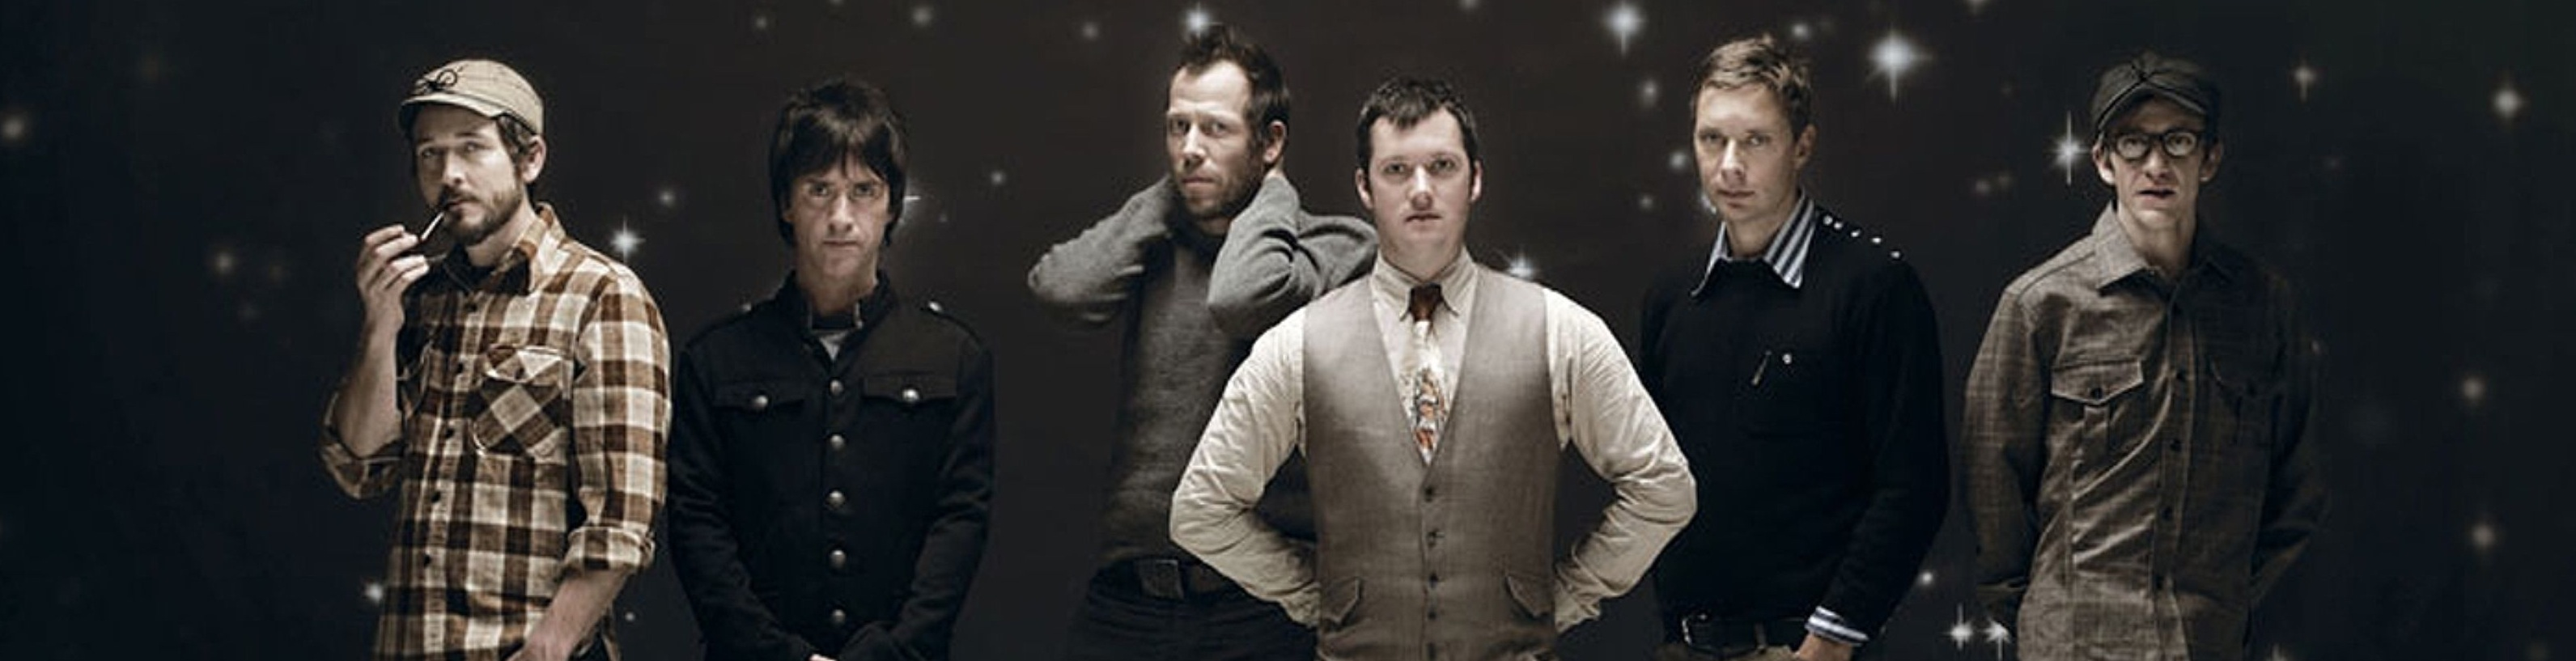 Modest-Mouse-Band-Wallpaper